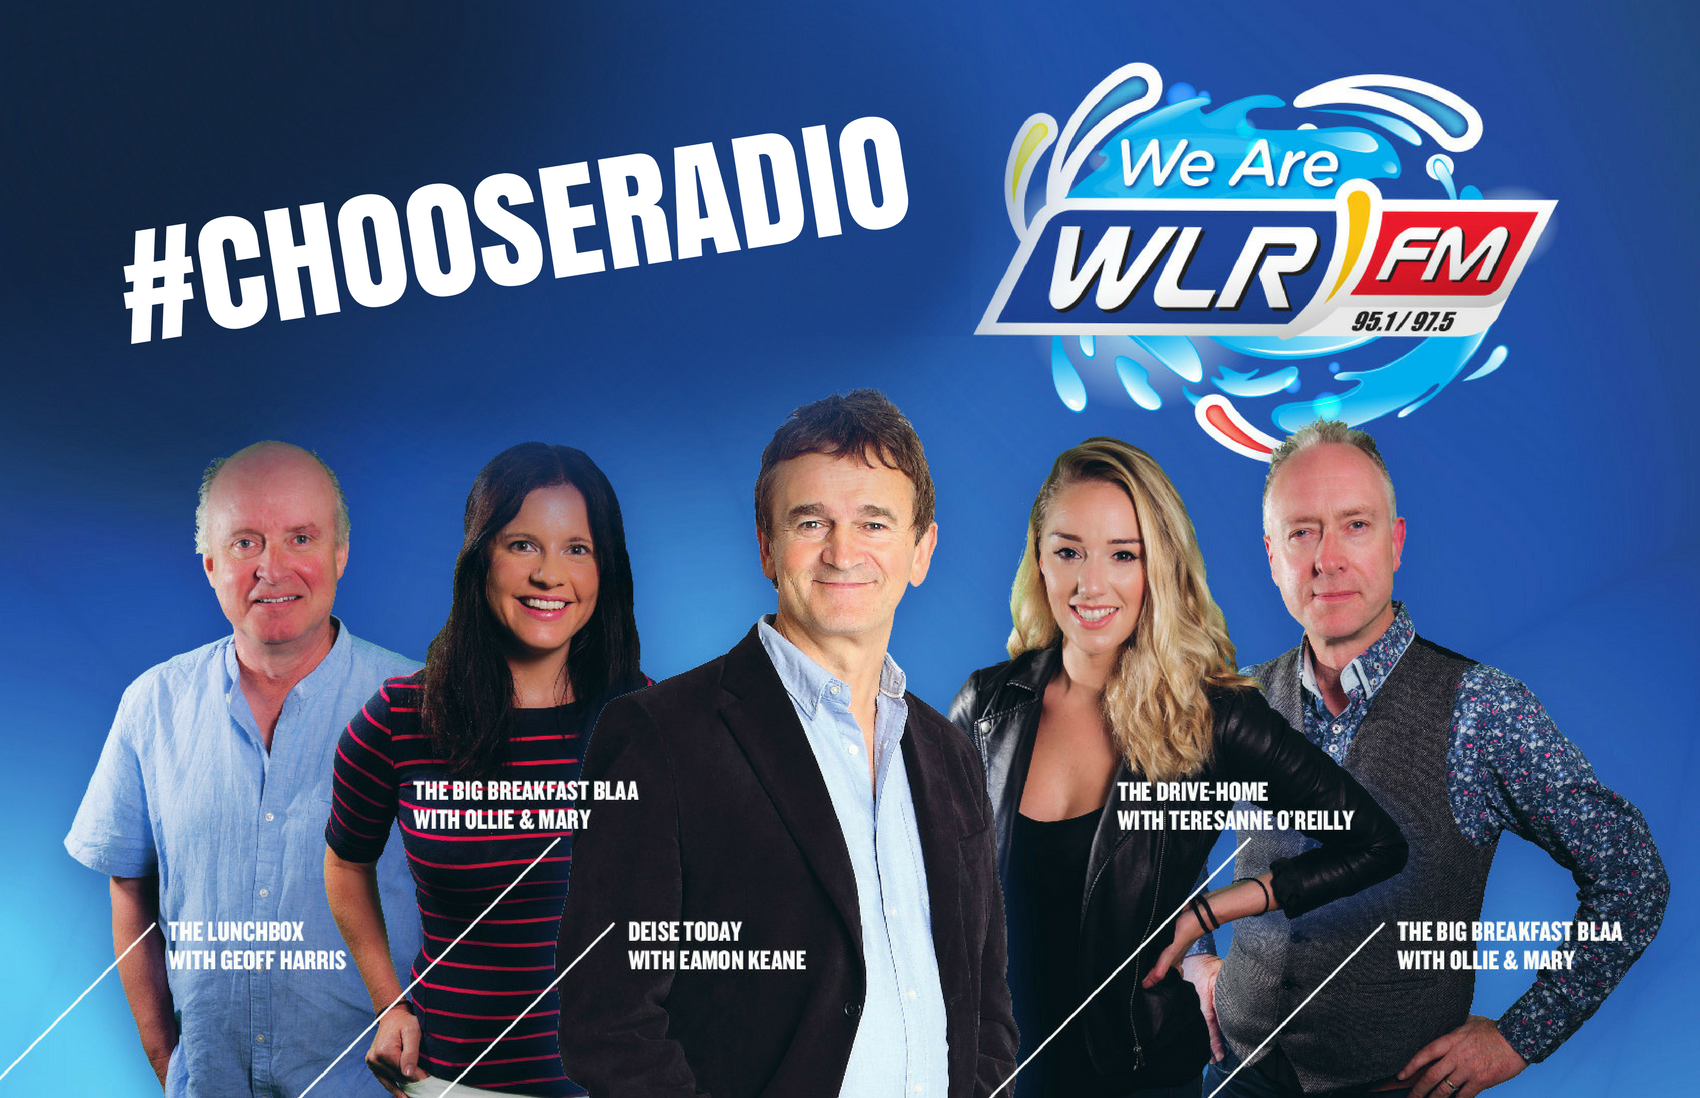 WLR records listenership figures among the highest in the station's history